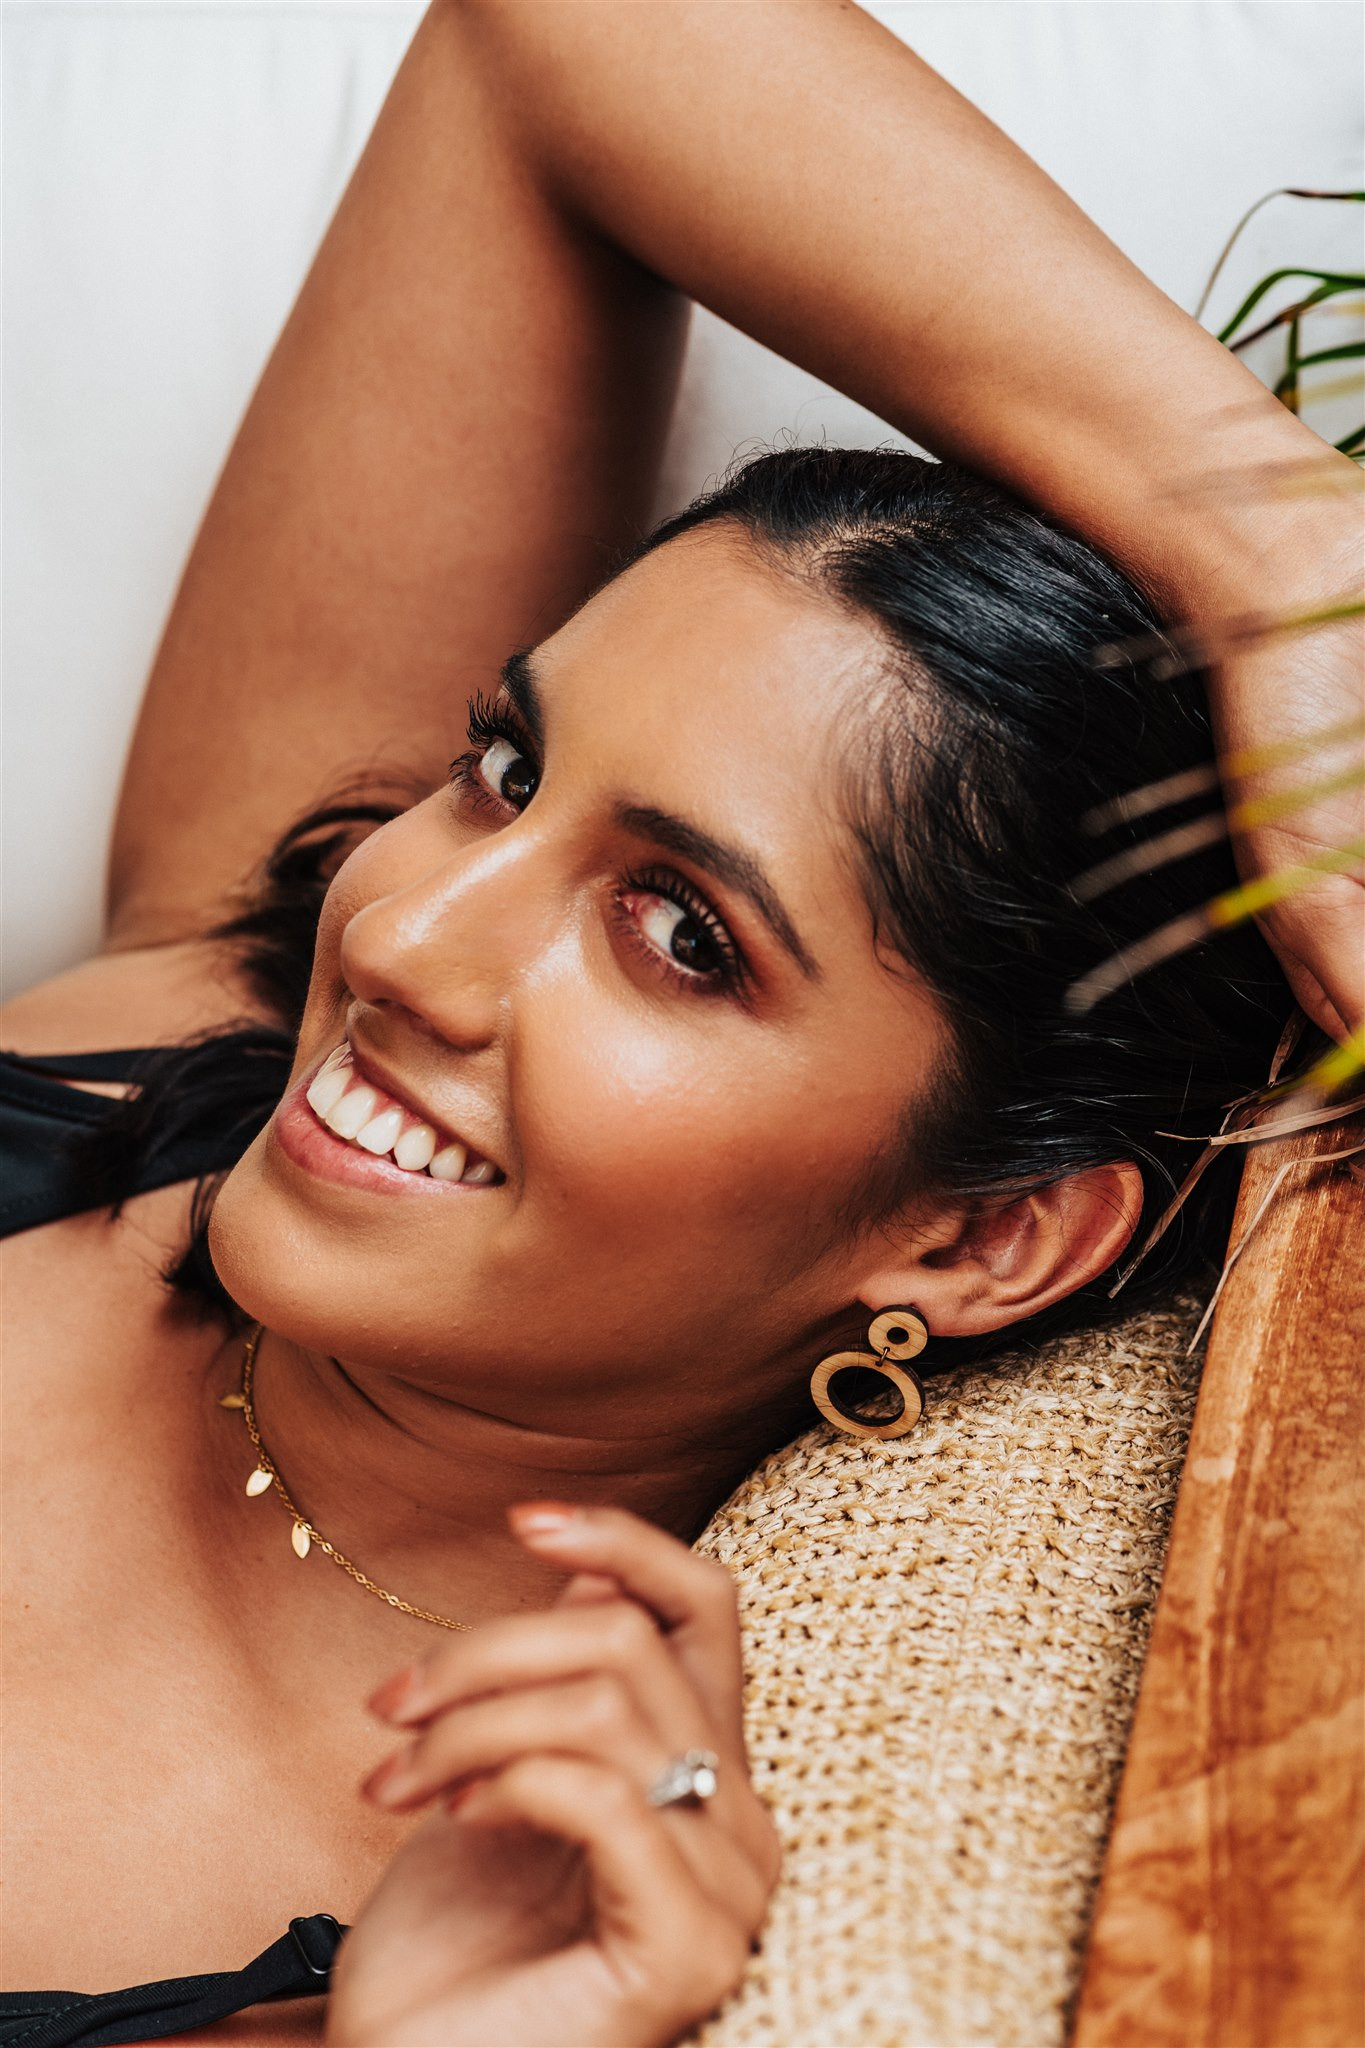 low waste gift for her, bamboo earrings